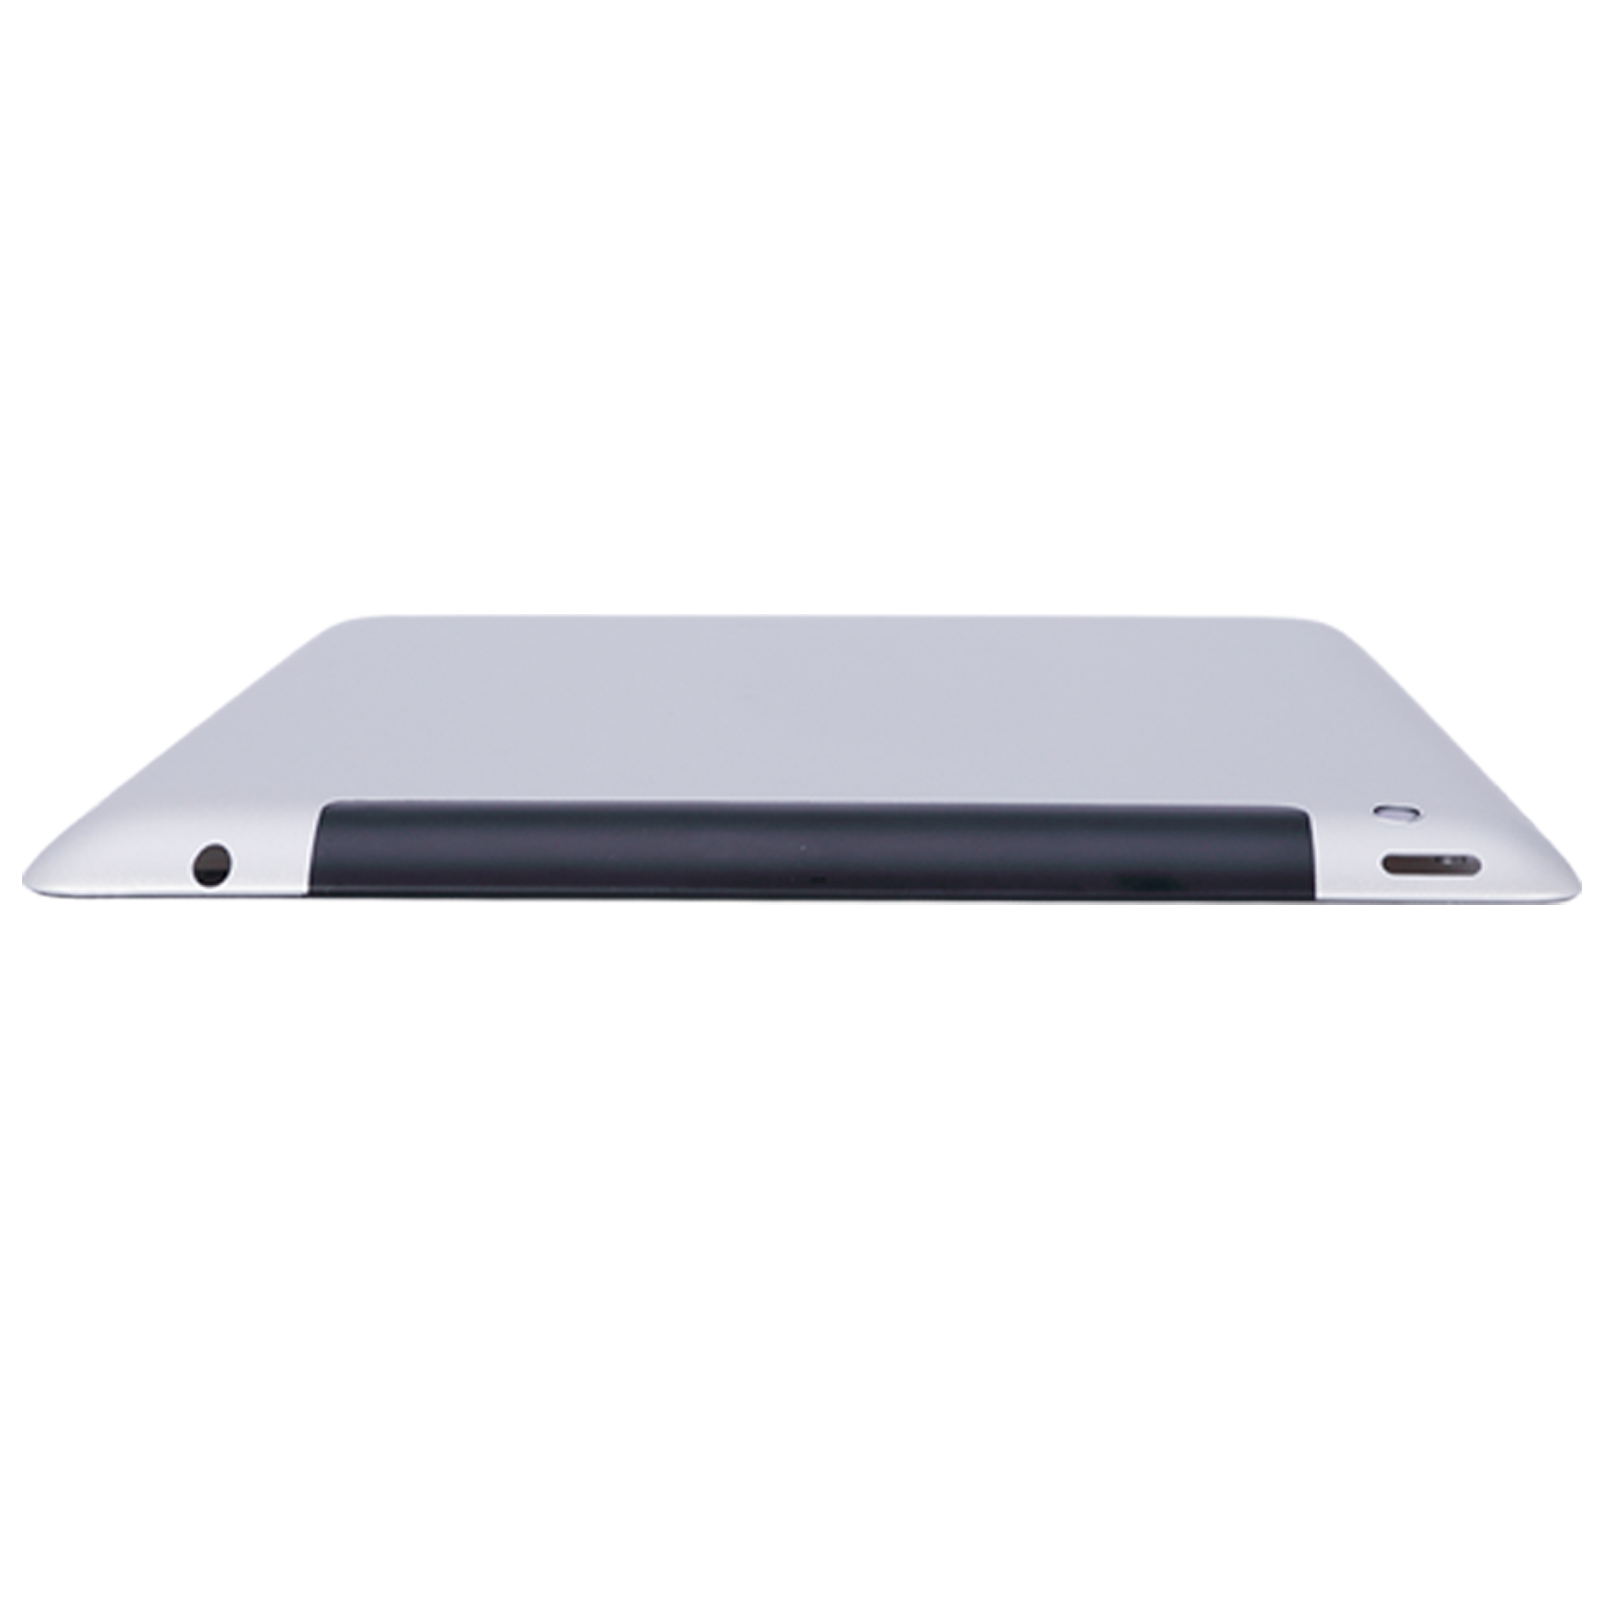 Back Battery Cover Housing For Apple iPad 4 4G A1459 A1460 Wlan+Celluar Version